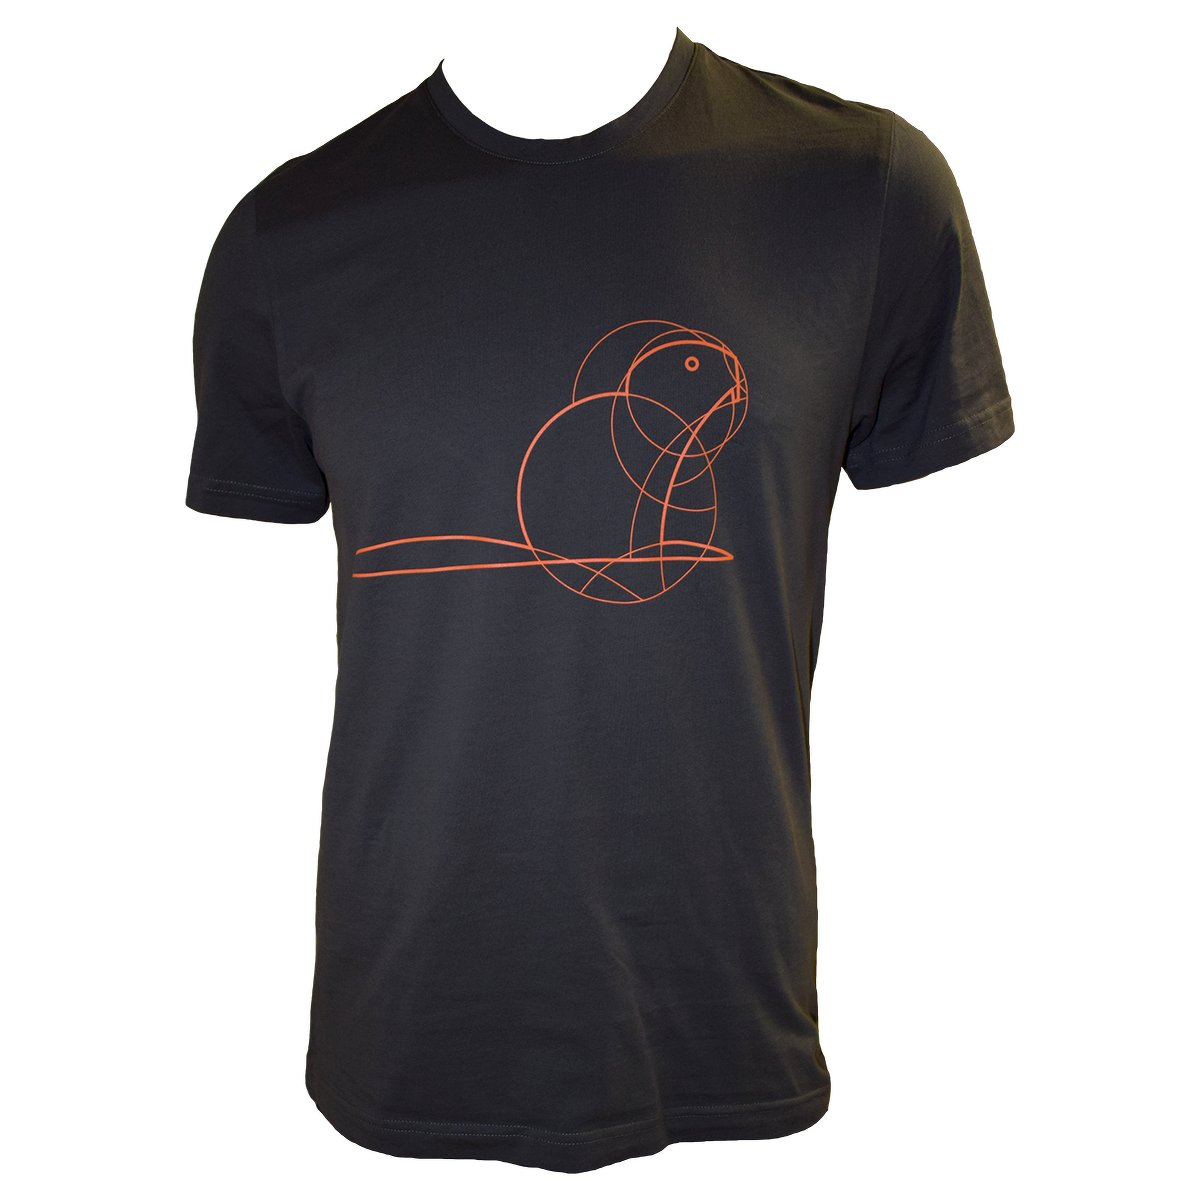 https://www.omgubuntu.co.uk/wp-content/uploads/2018/04/ubuntu-18.04-bionic-beaver-t-shirt.jpg